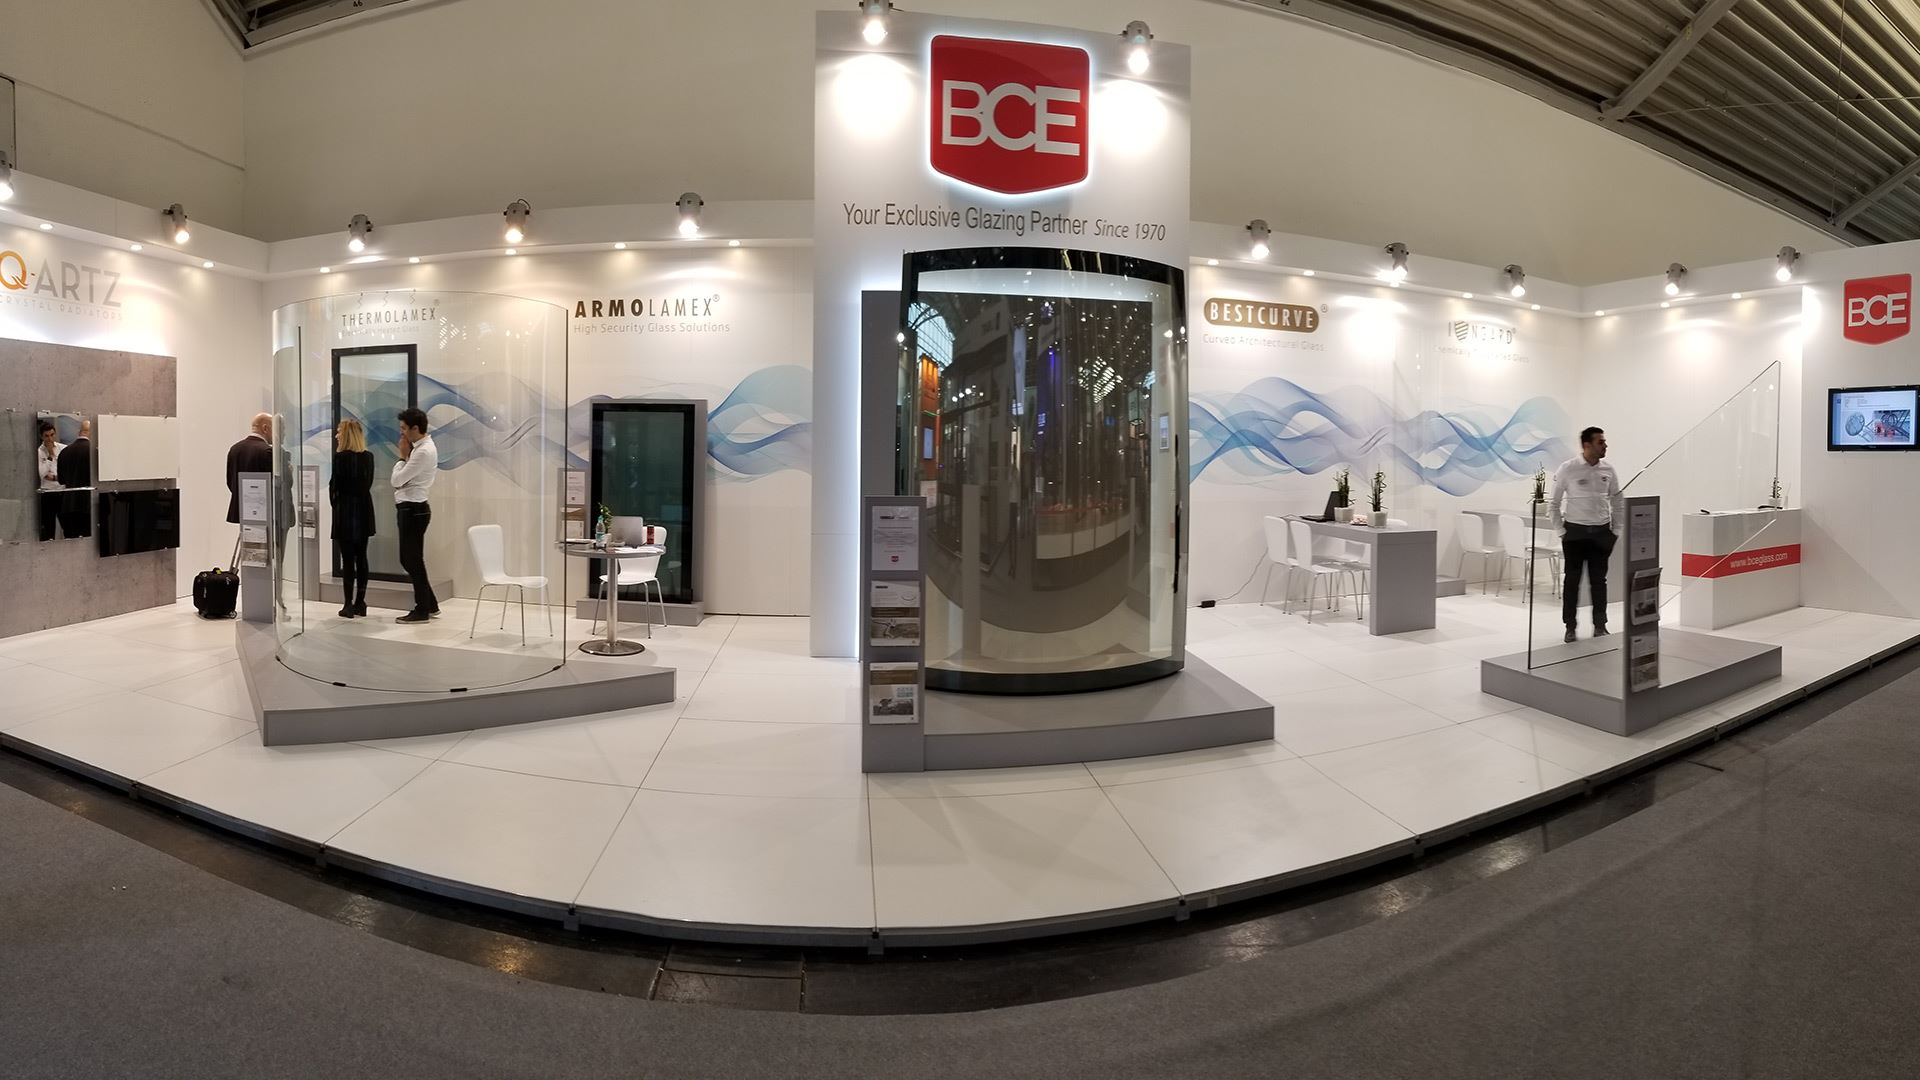 BCE is at BAU 2019 Exhibition